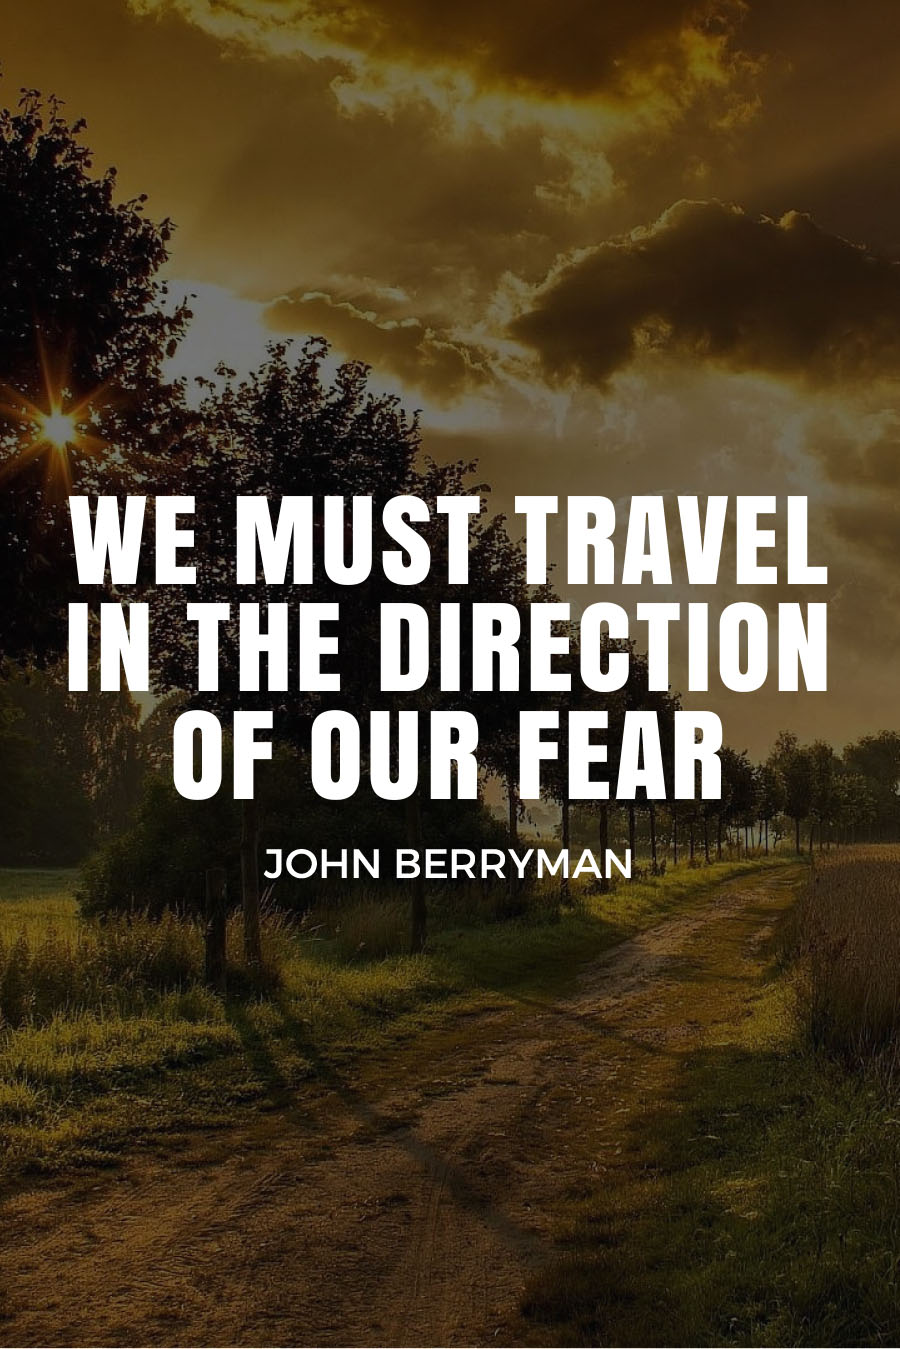 Five Quotes About Travel Fears - WE MUST TRAVEL IN THE DIRECTION OF OUR FEAR - John Berryman